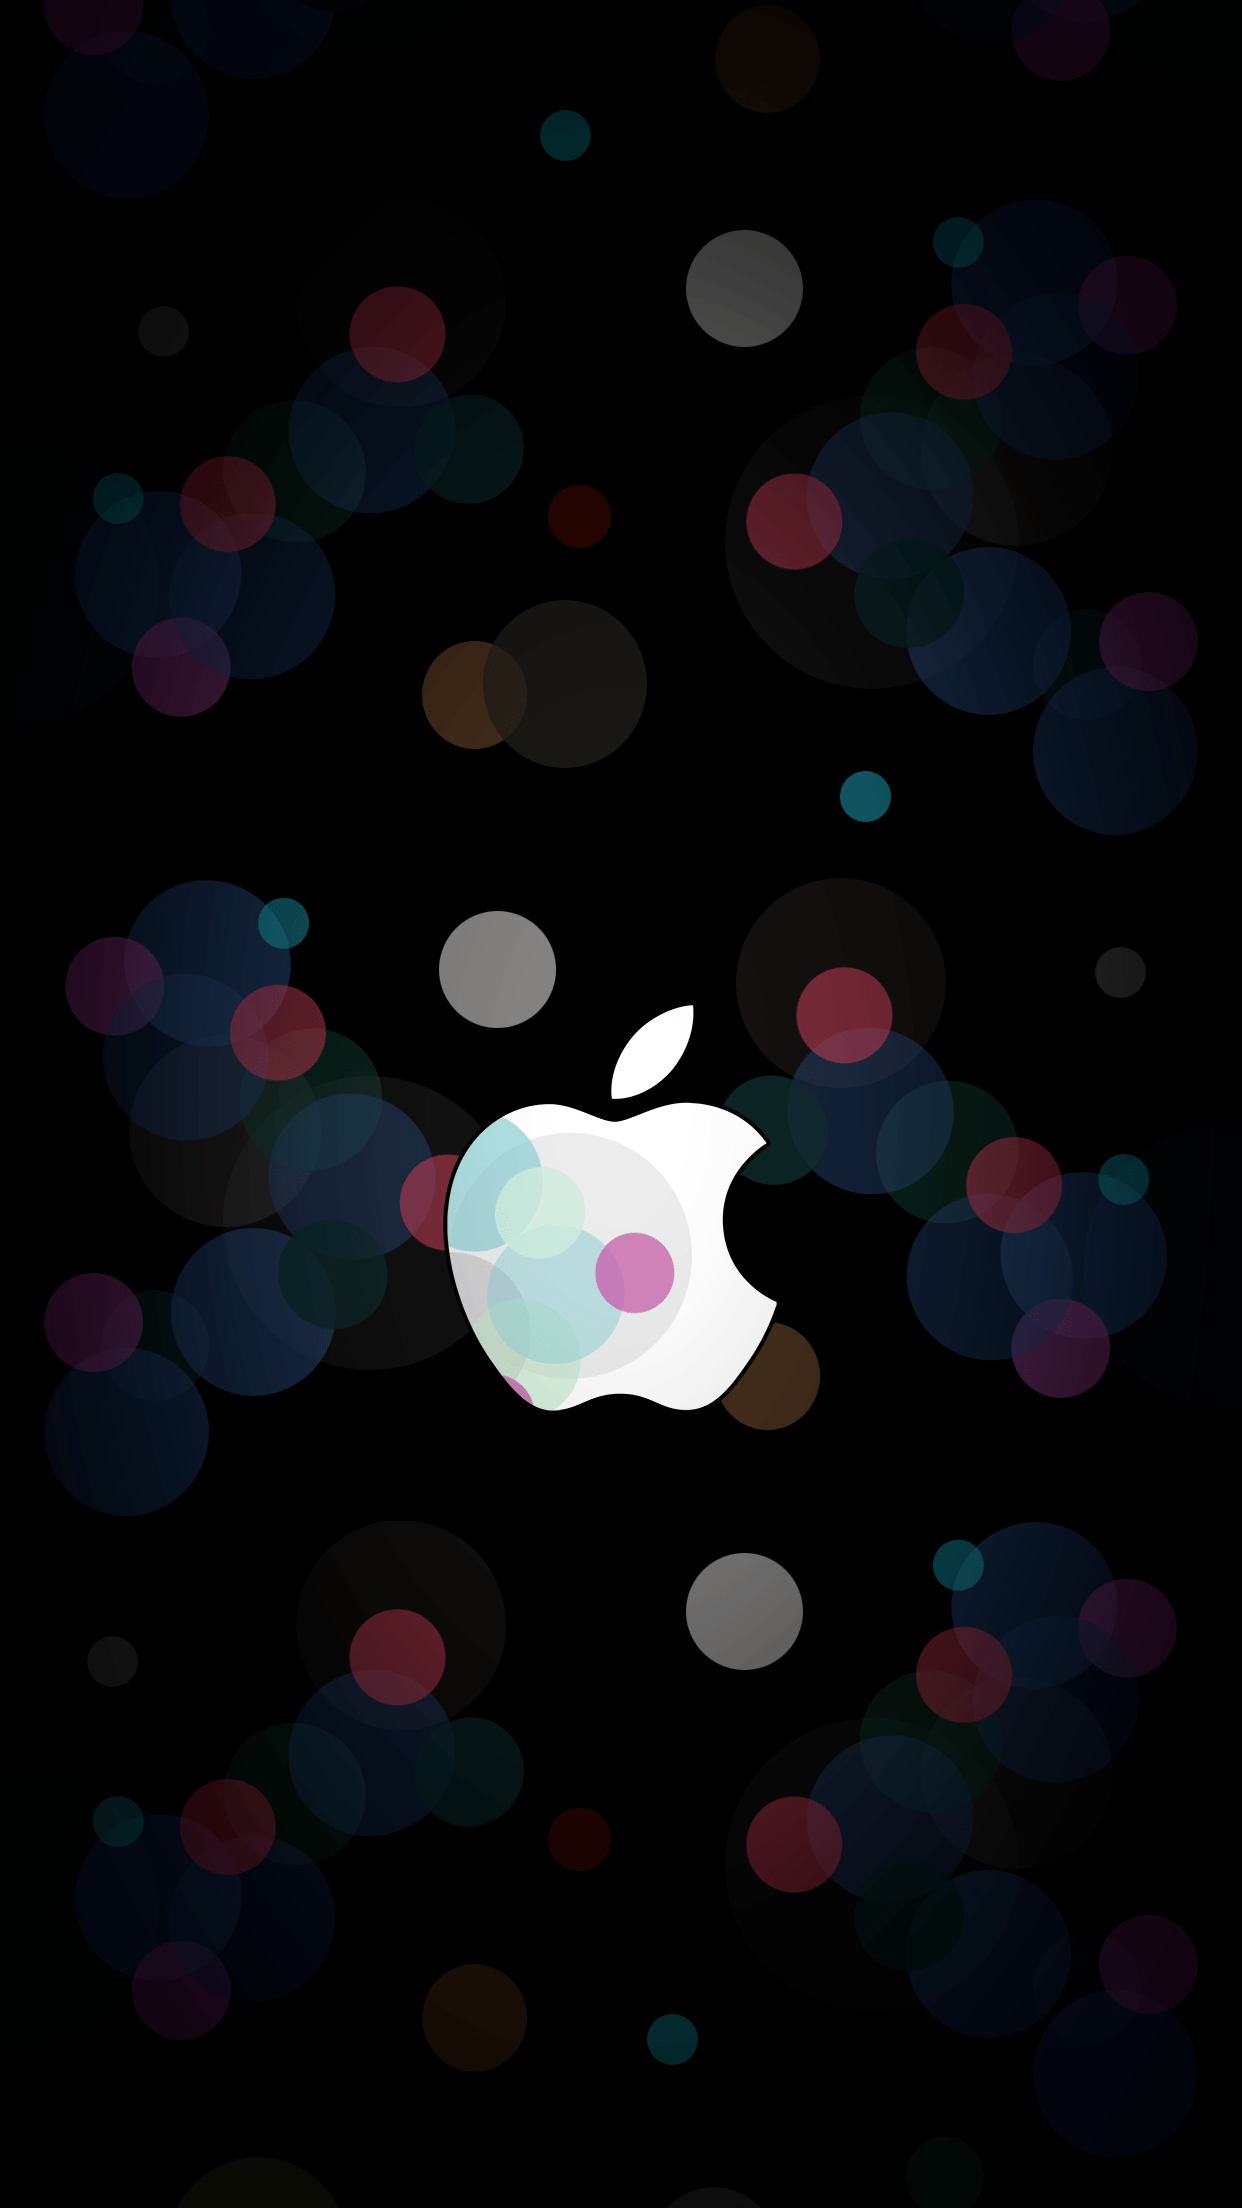 1242x2208 More September 7 Apple media event wallpapers